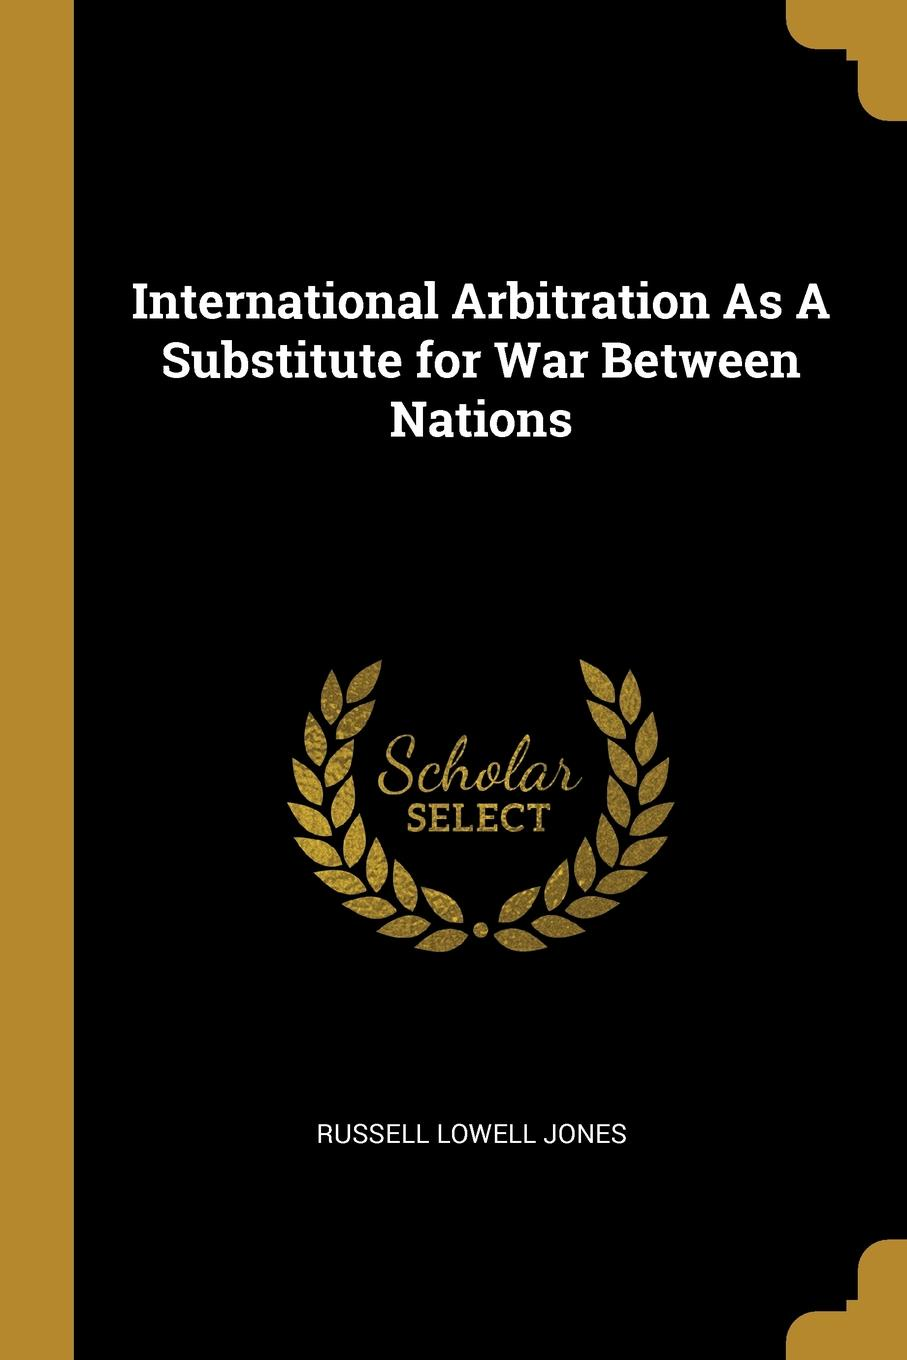 International Arbitration As A Substitute for War Between Nations